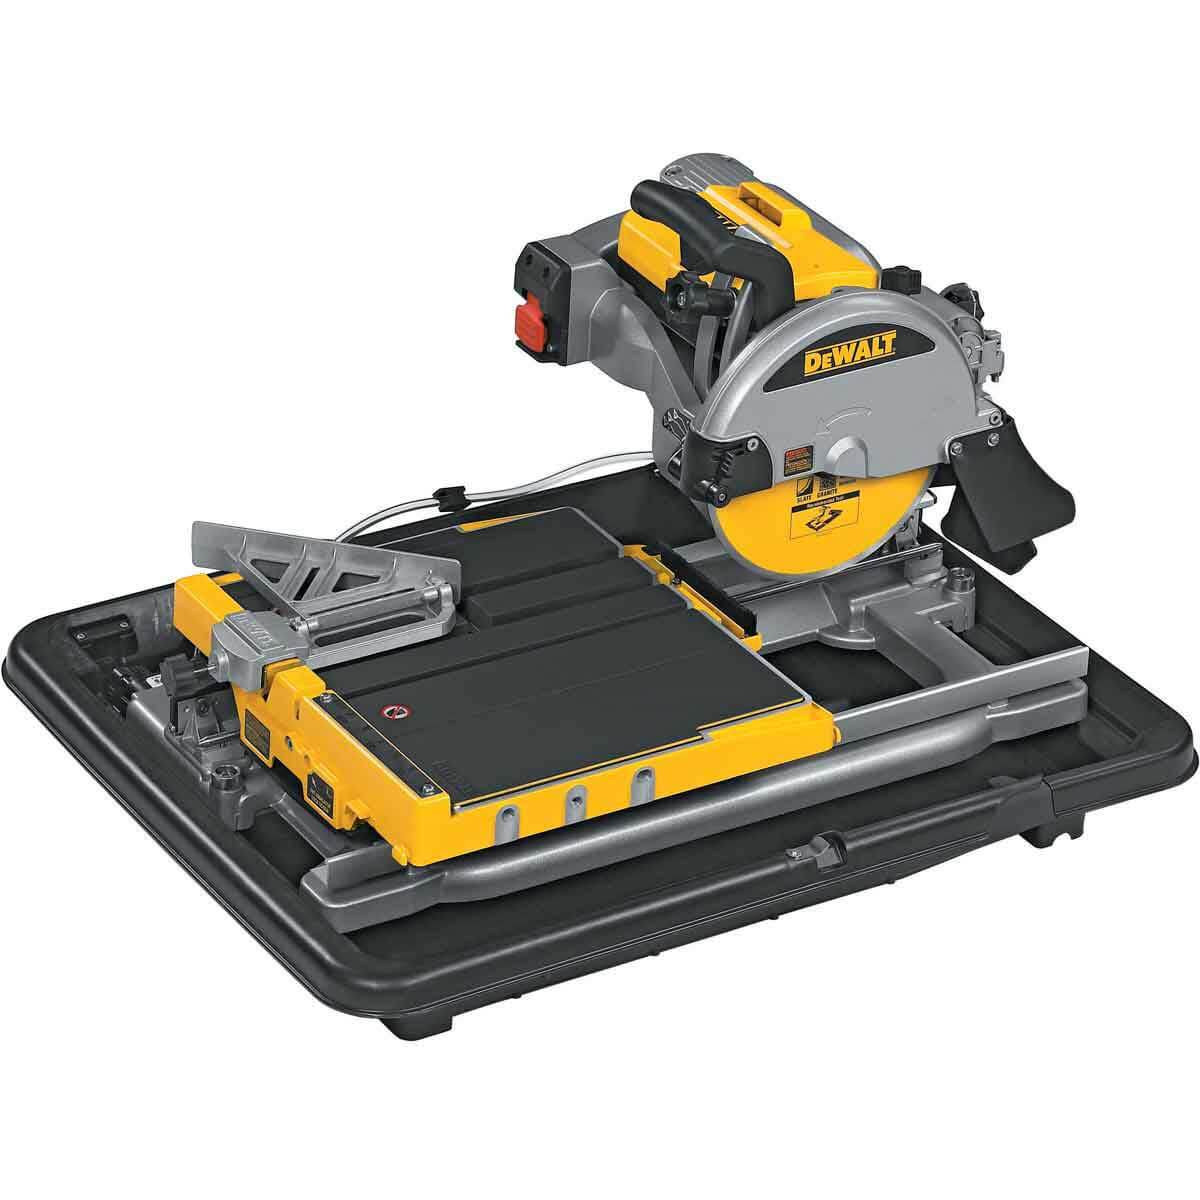 Dewalt Tile Saw without water tray